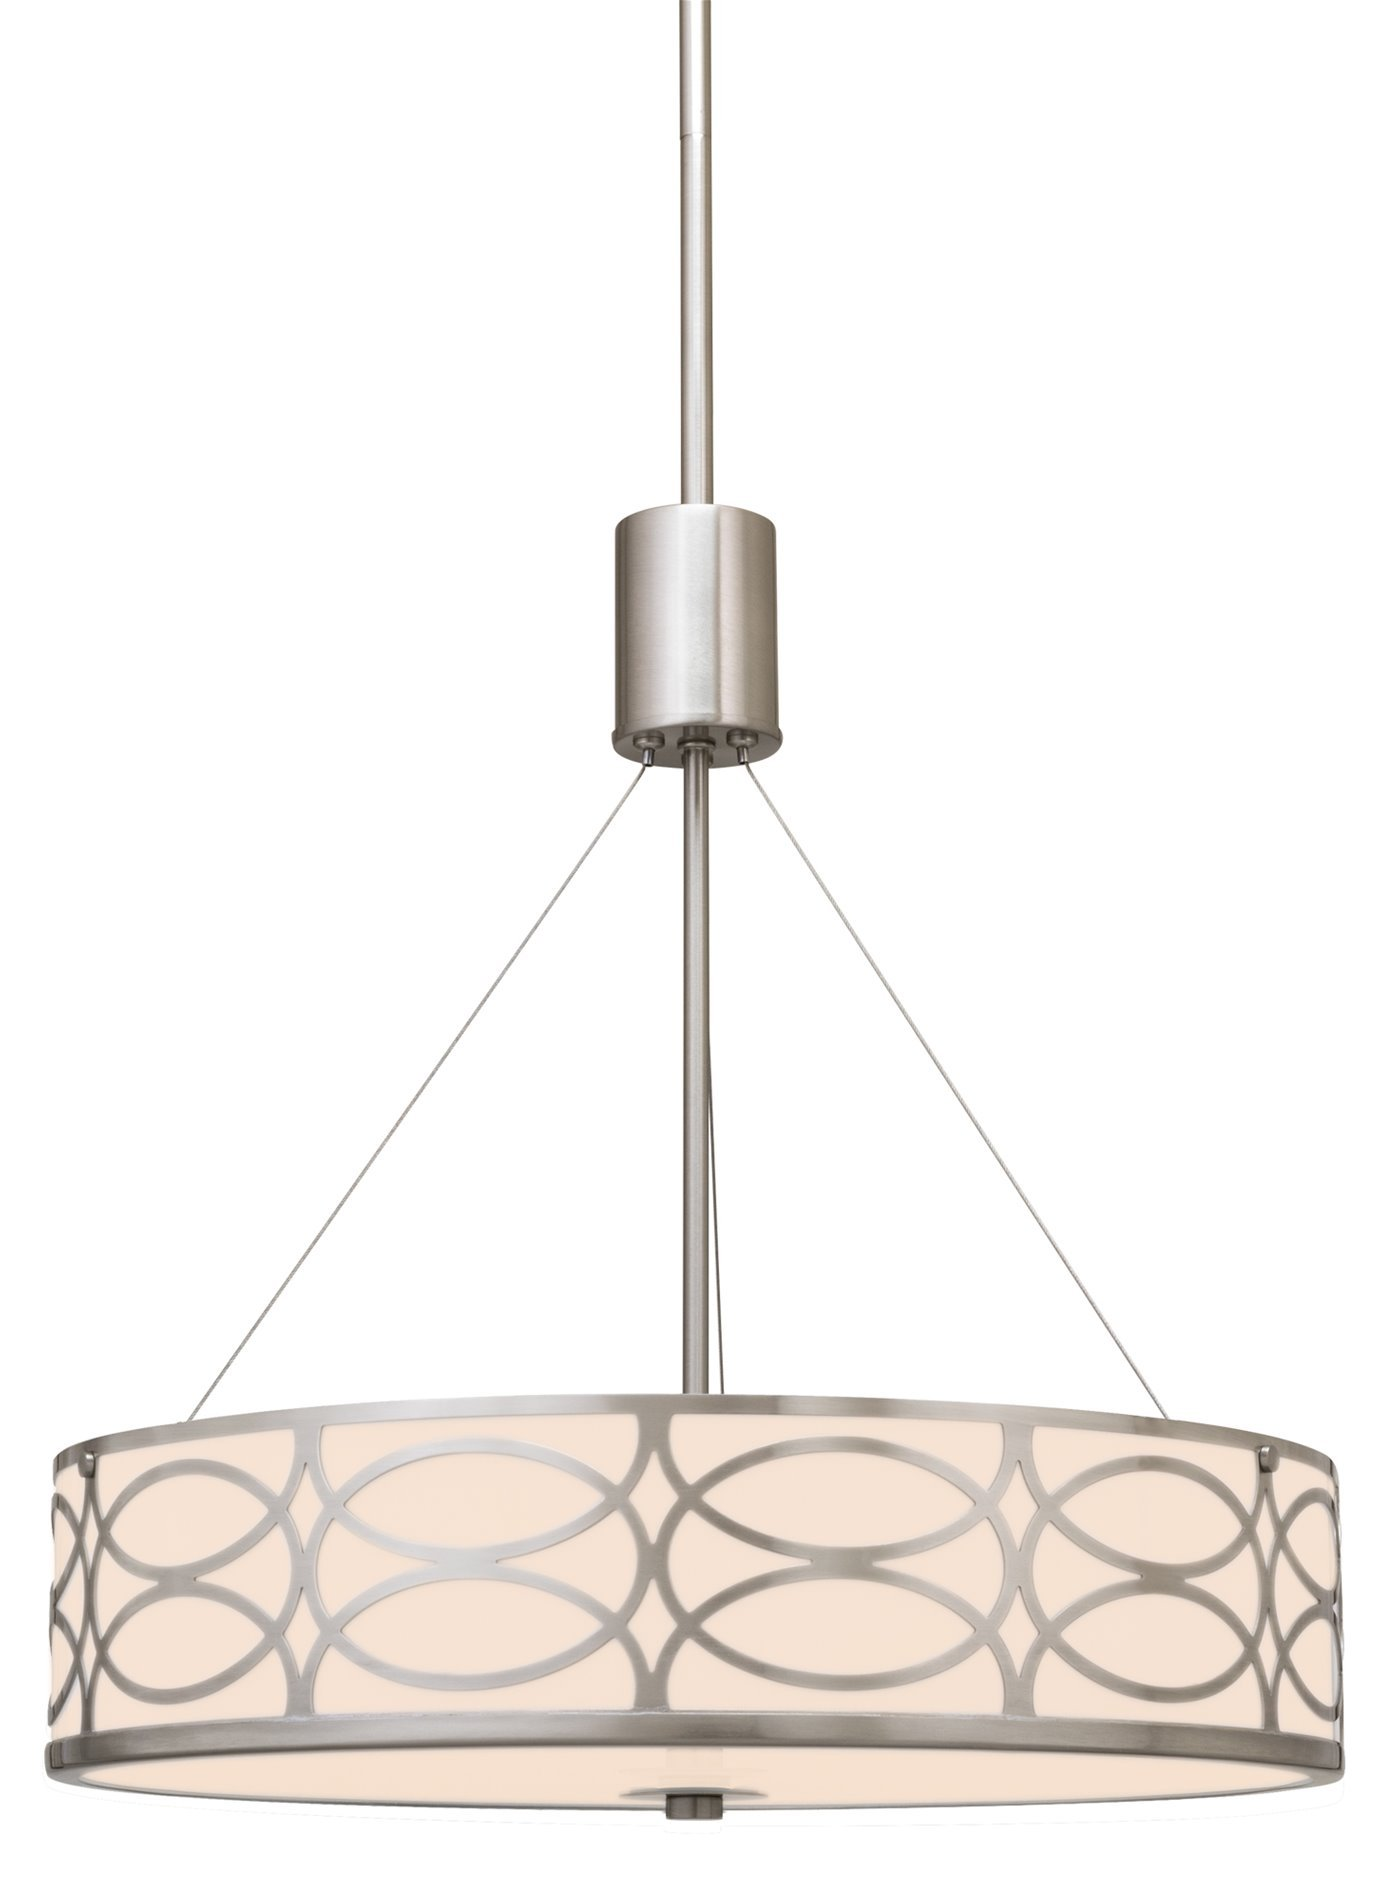 Kira Home Sienna 18'' 3-Light Metal Drum Chandelier + Glass Diffuser, Brushed Nickel Finish